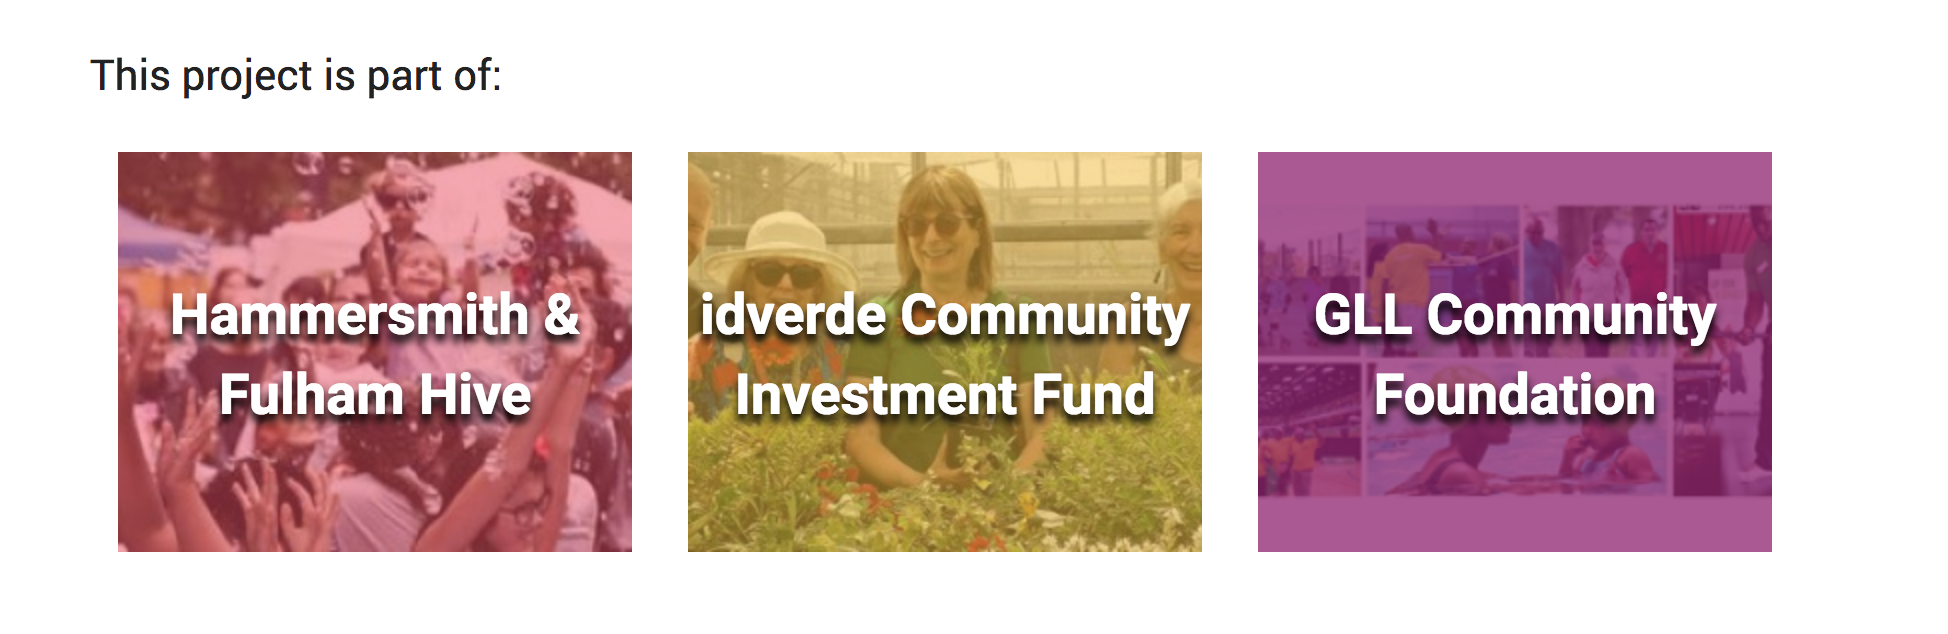 GLL Community Foundation, Hammersmith & Fulham Hive, idverde Community Investment Fund